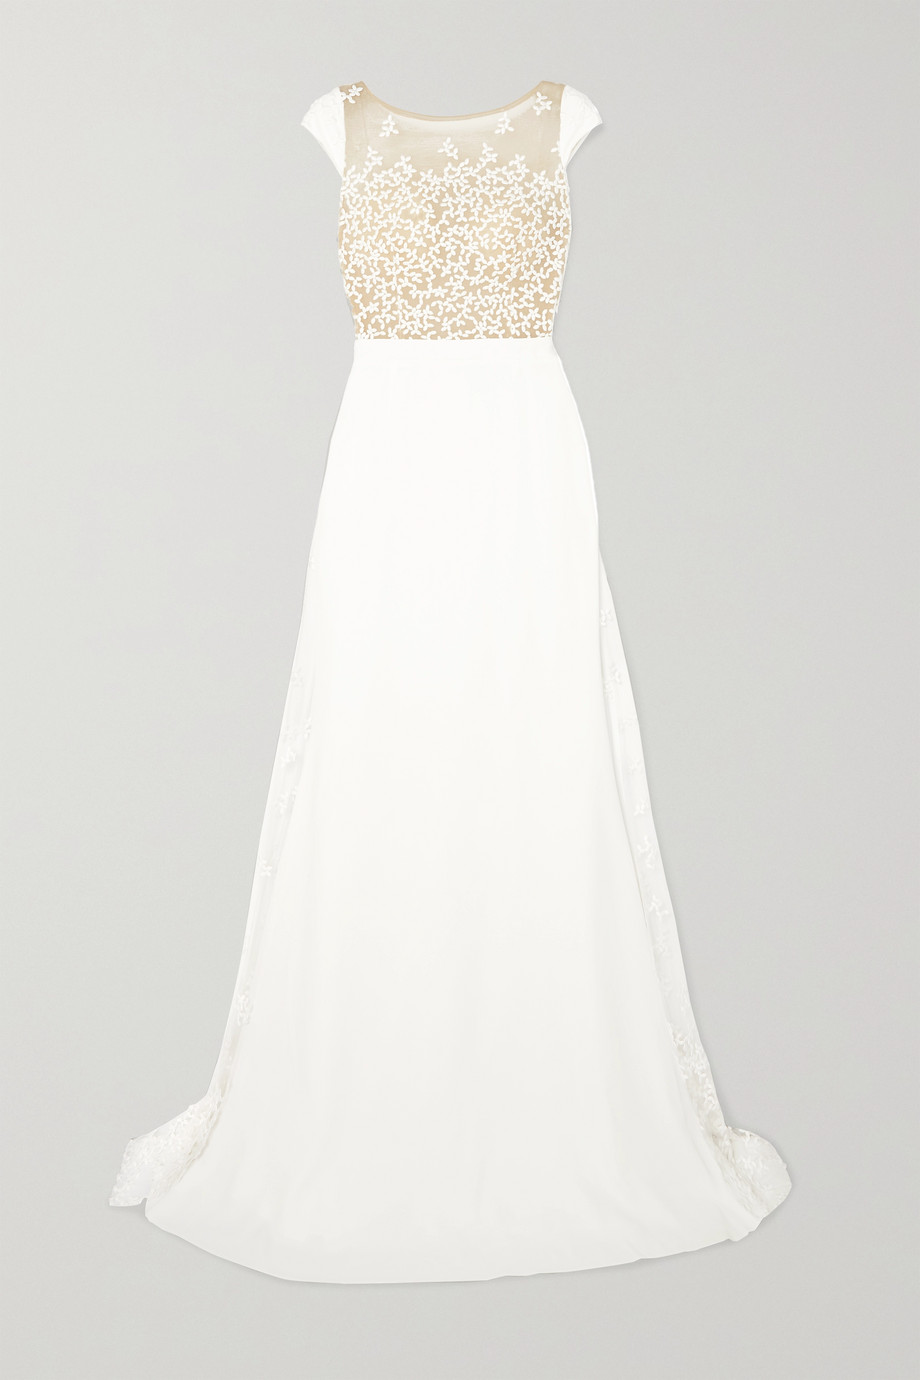 Rime Arodaky Alvin embroidered tulle and crepe gown